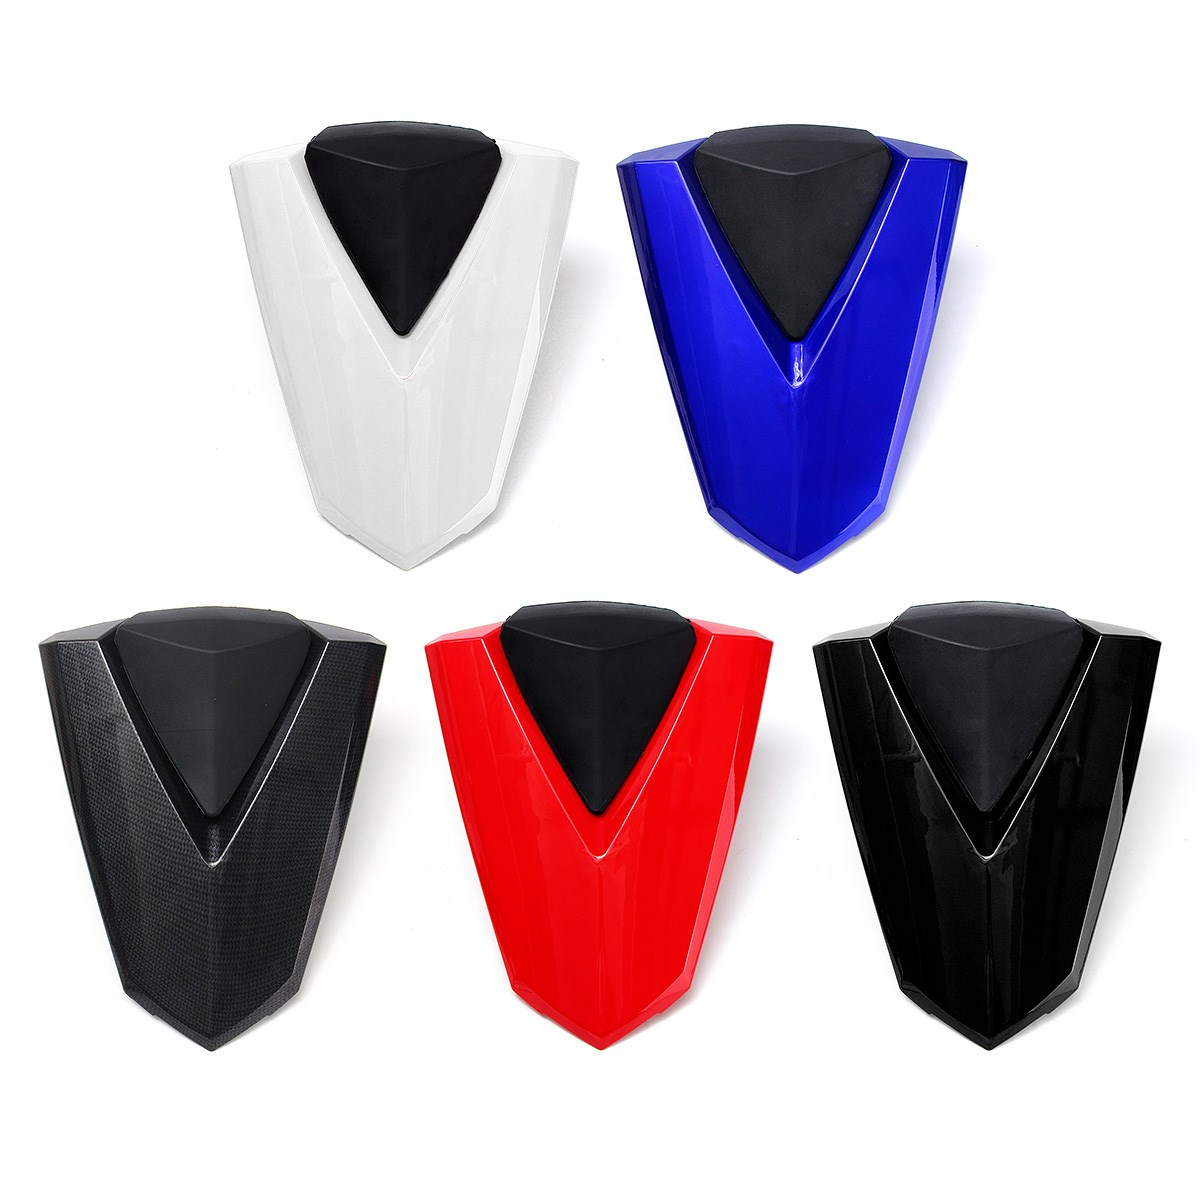 Motorcycle Pillion Rear Seat Cover Solo Fairing Cowl For YAMAHA YZF R25 R3 YZF-R3 2013-2016 Black/Red/White/Blue/Carbon Fiber waase motorcycle rear back drive chain guard mud cover panel shield fairing cowl protector for yamaha yzf r3 r25 mt 03 mt 25